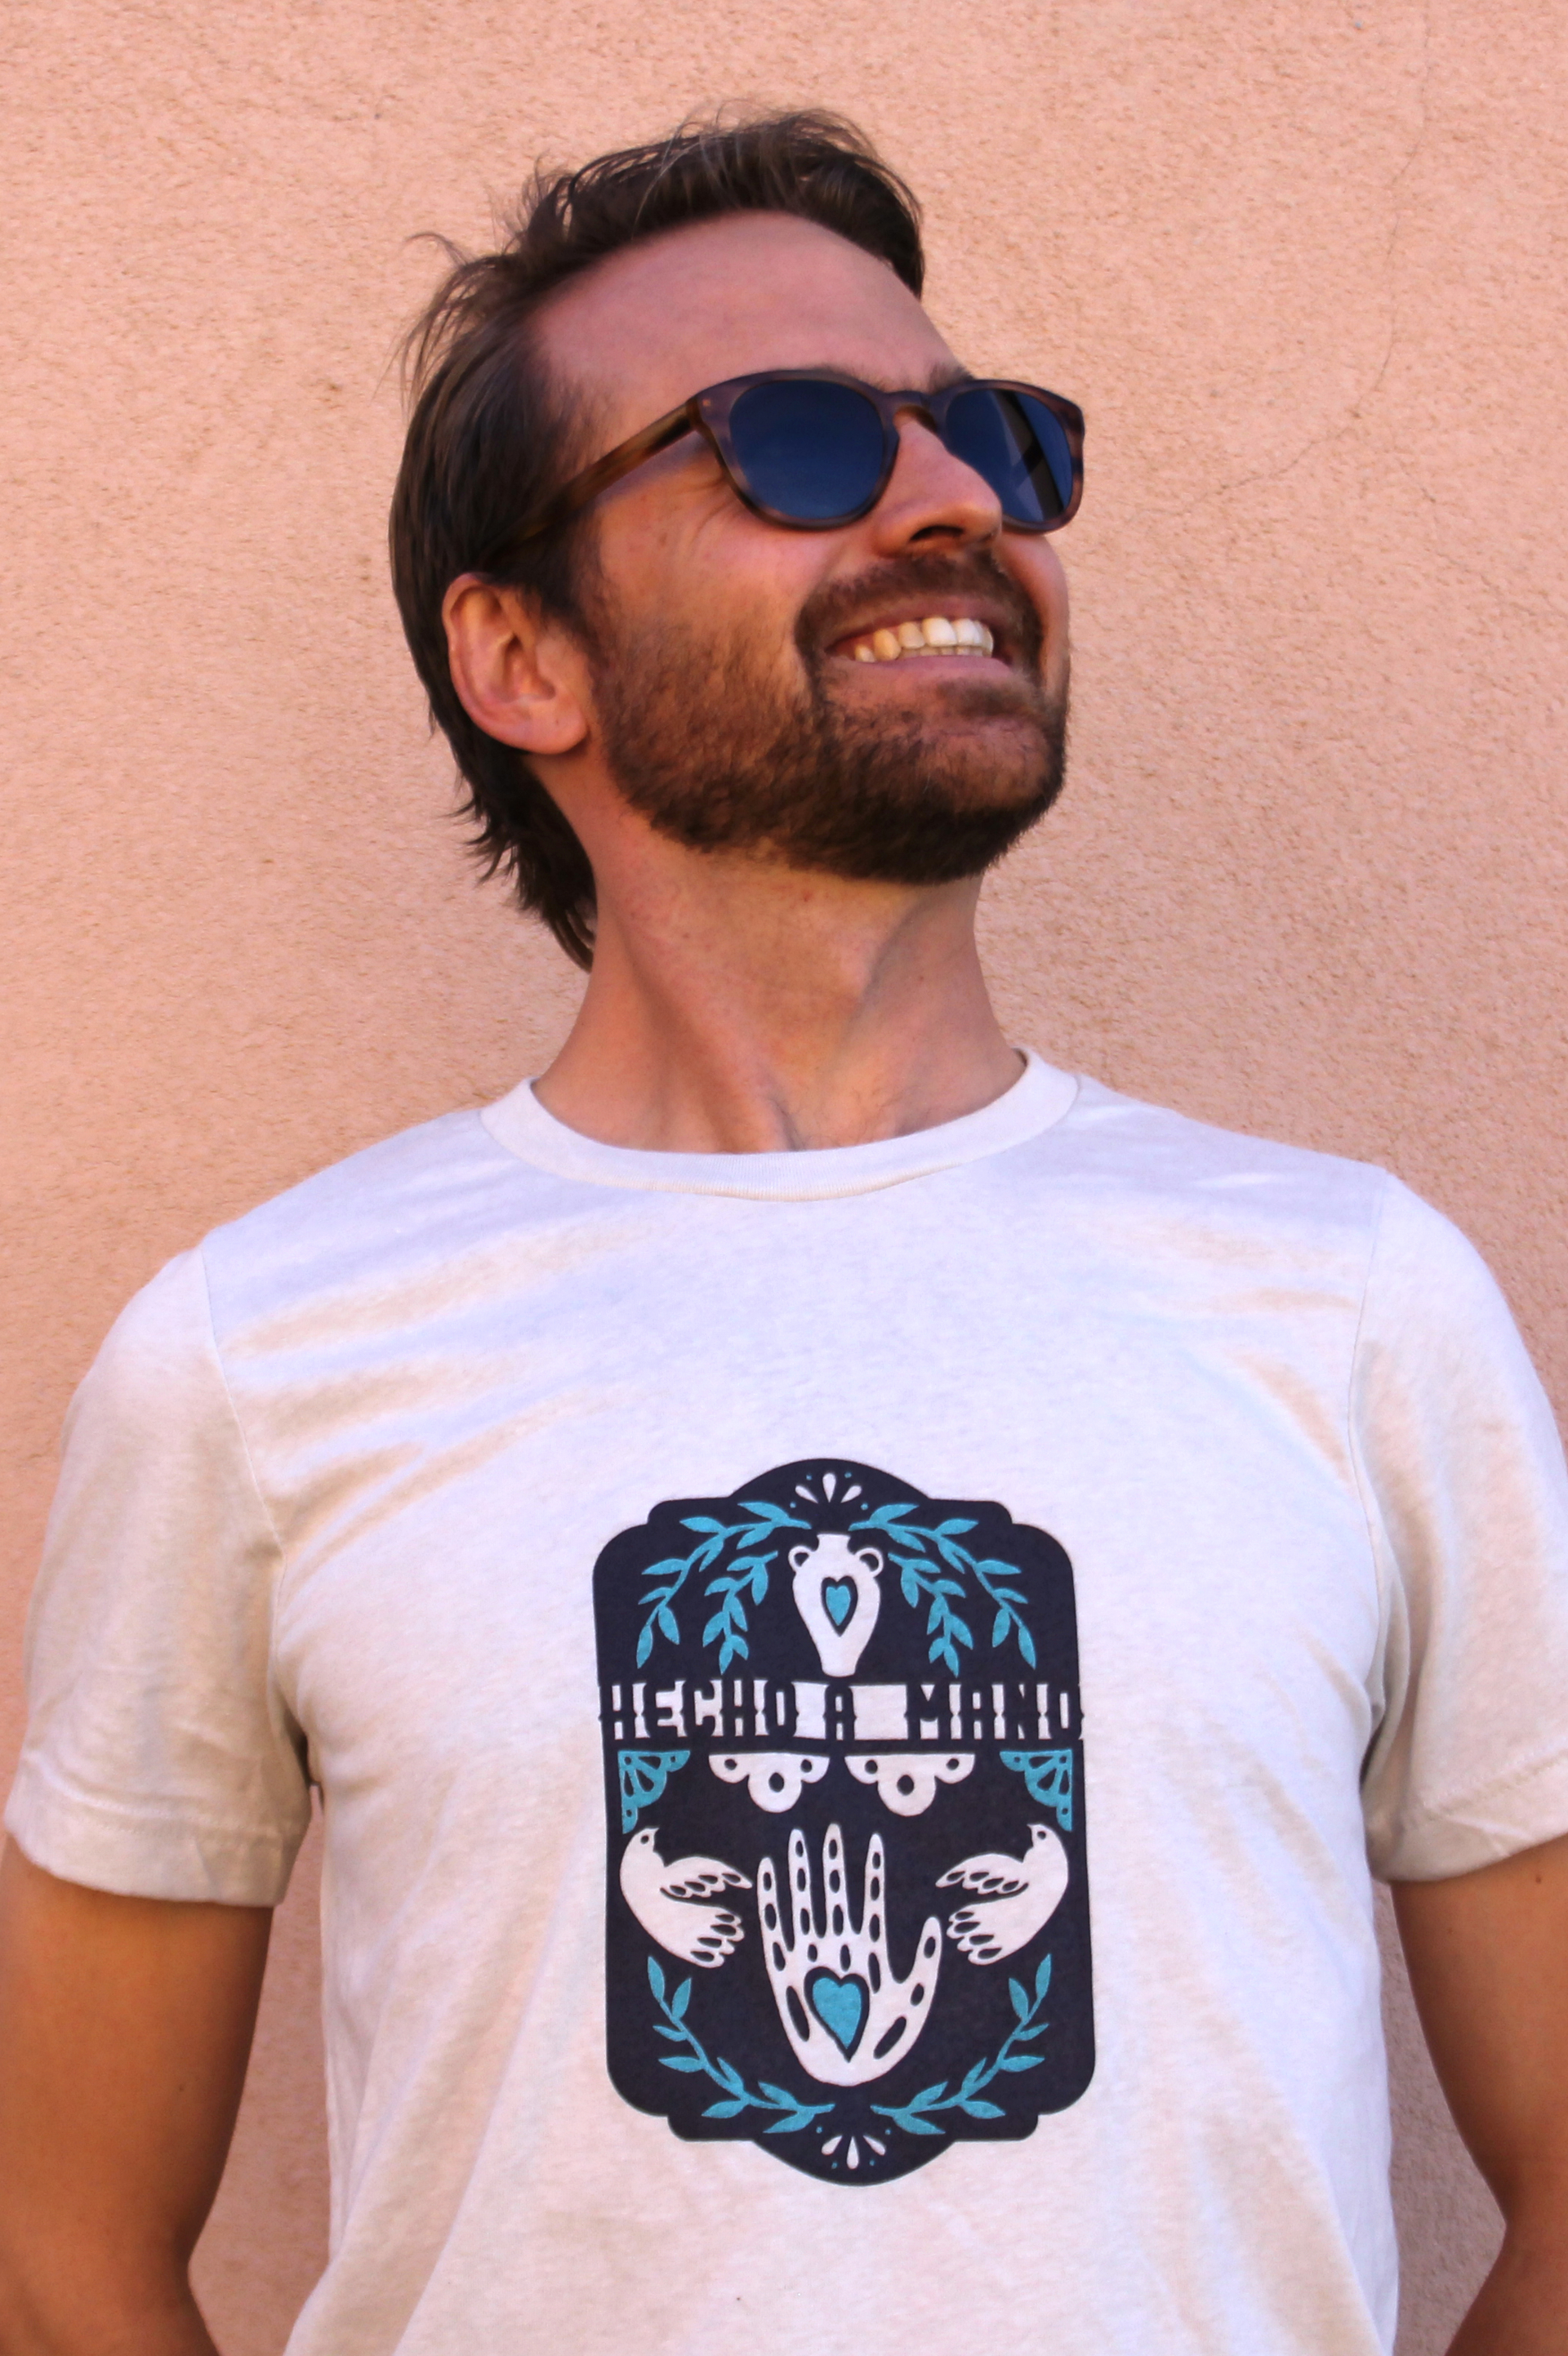 Unisex Light Gray T-Shirt by Hecho a Mano